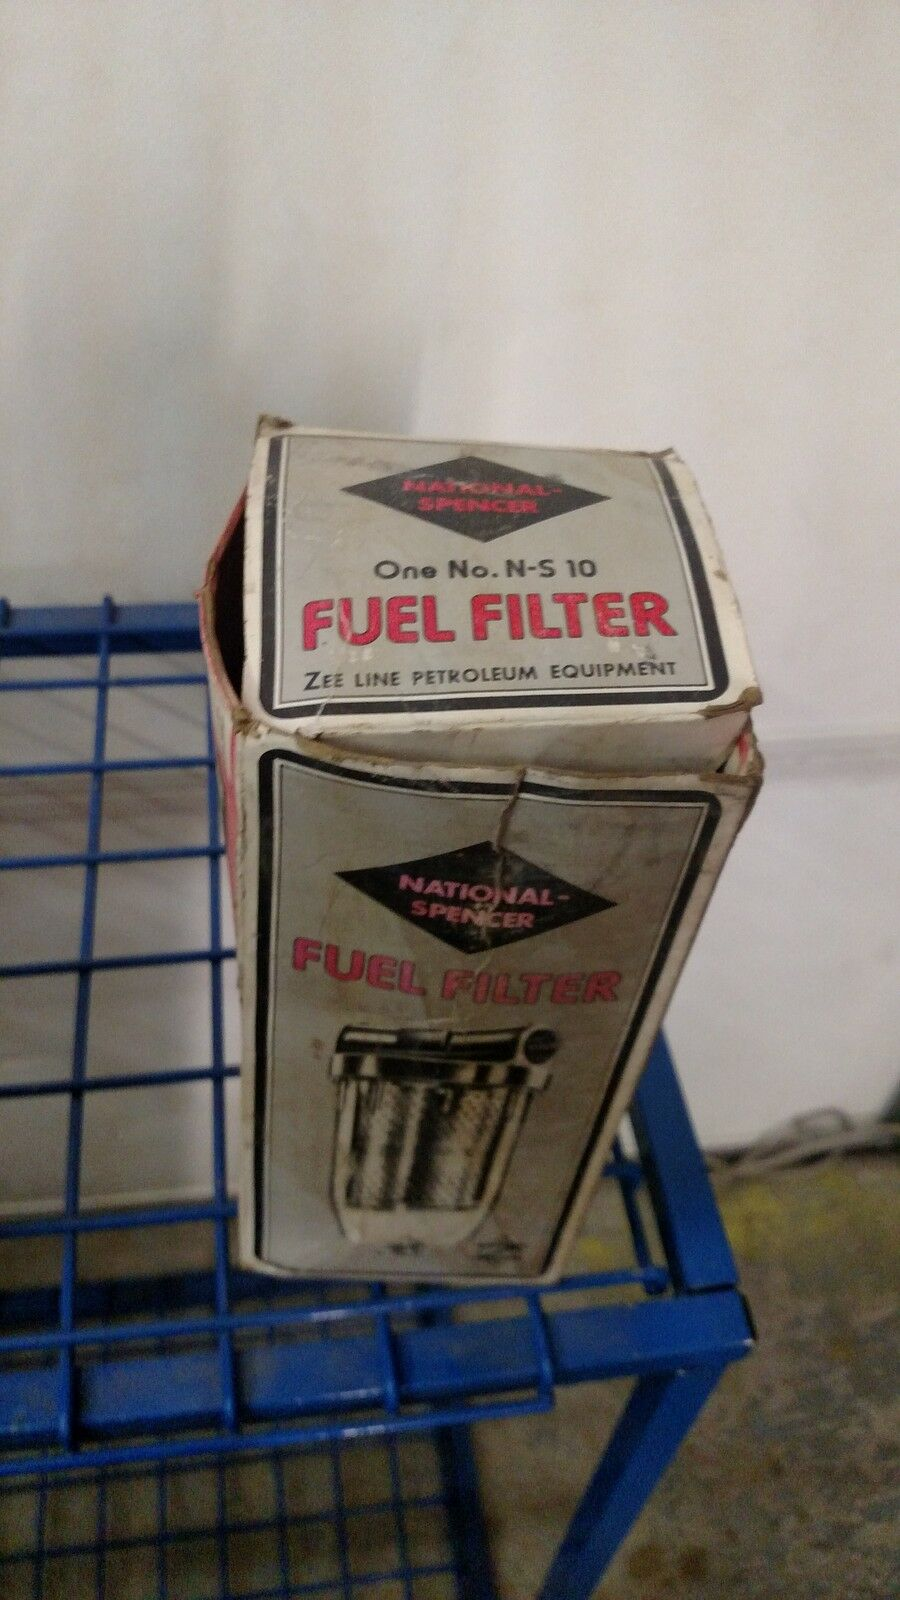 Business Industrial S 10 Fuel Filter National Spencer N